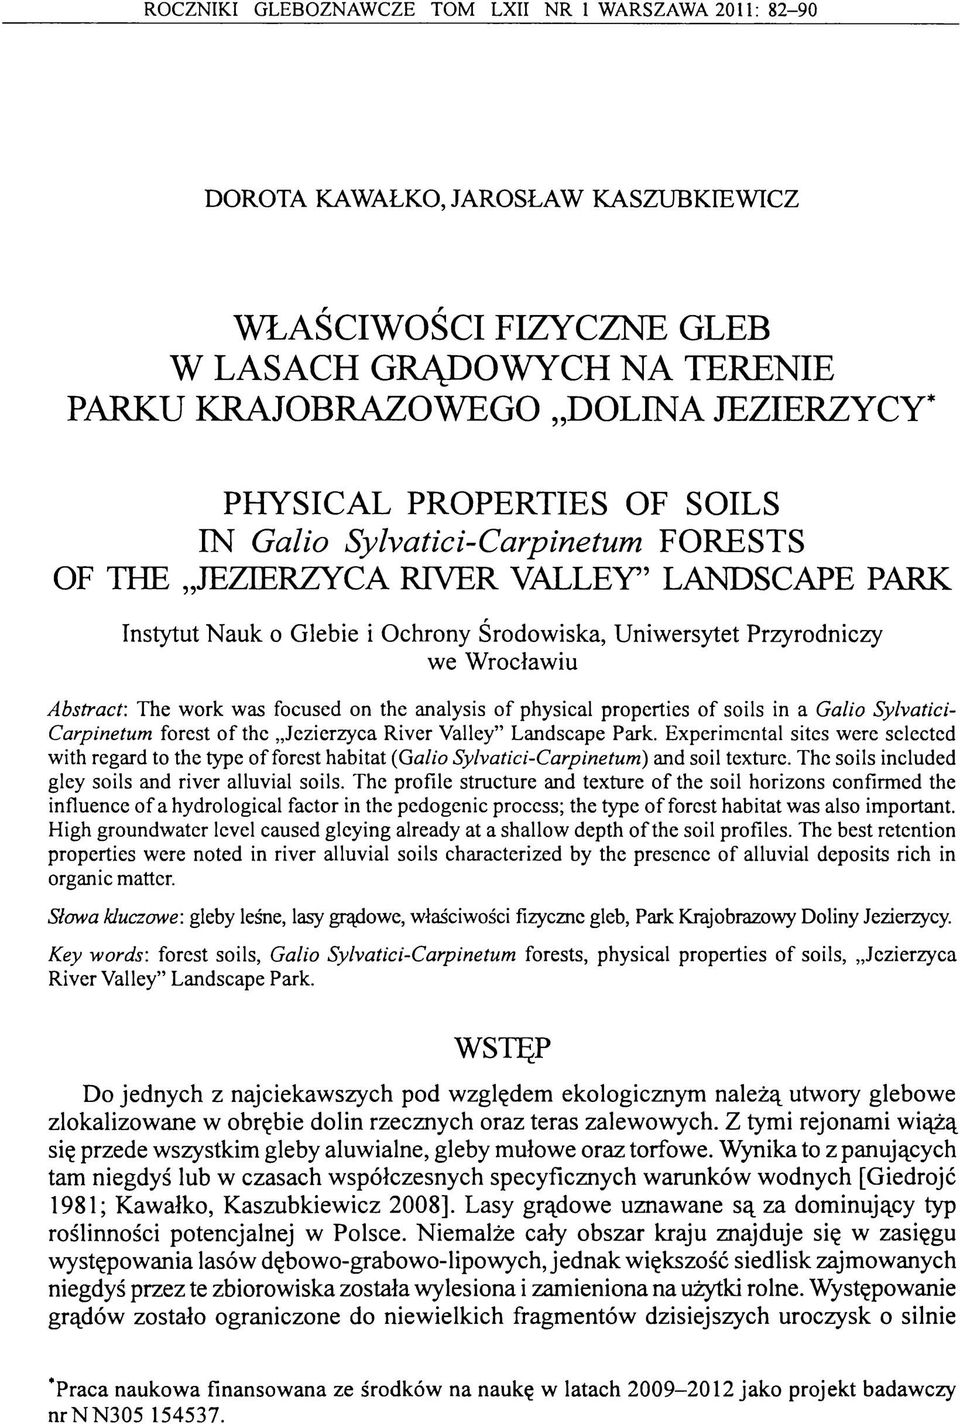 stract: The w ork was focused on the analysis o f physical properties o f soils in a Galio Sylvatici- Carpinetum forest o f the Jczierzyca R iver Valley Landscape Park.